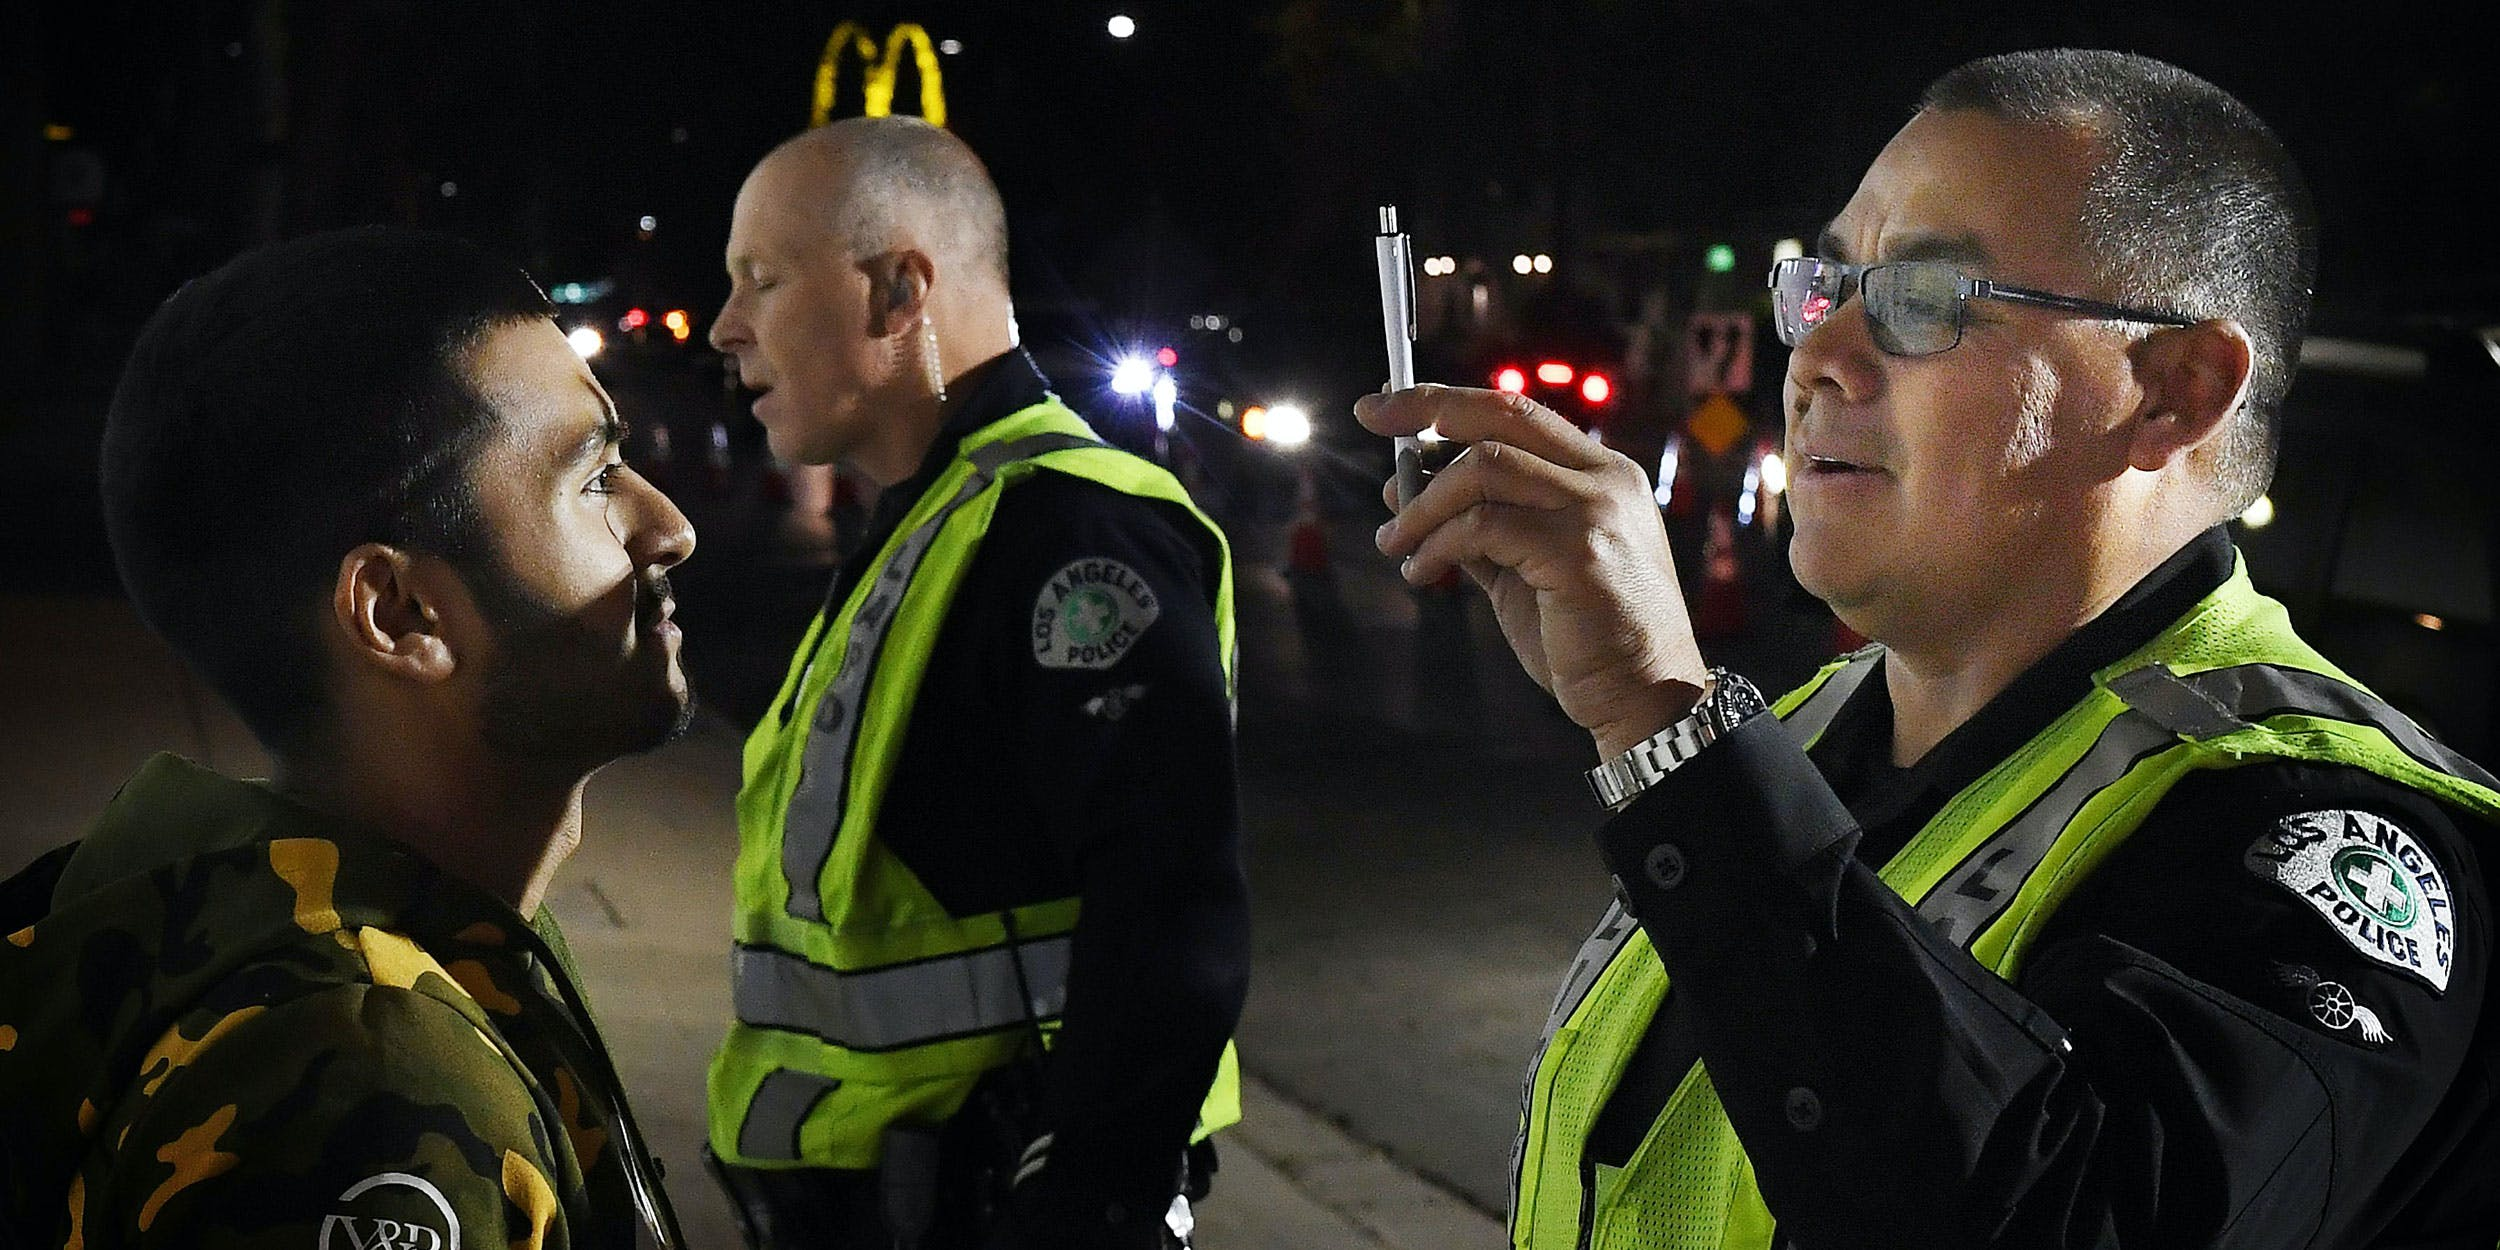 LAPD conduct an impaired driving test